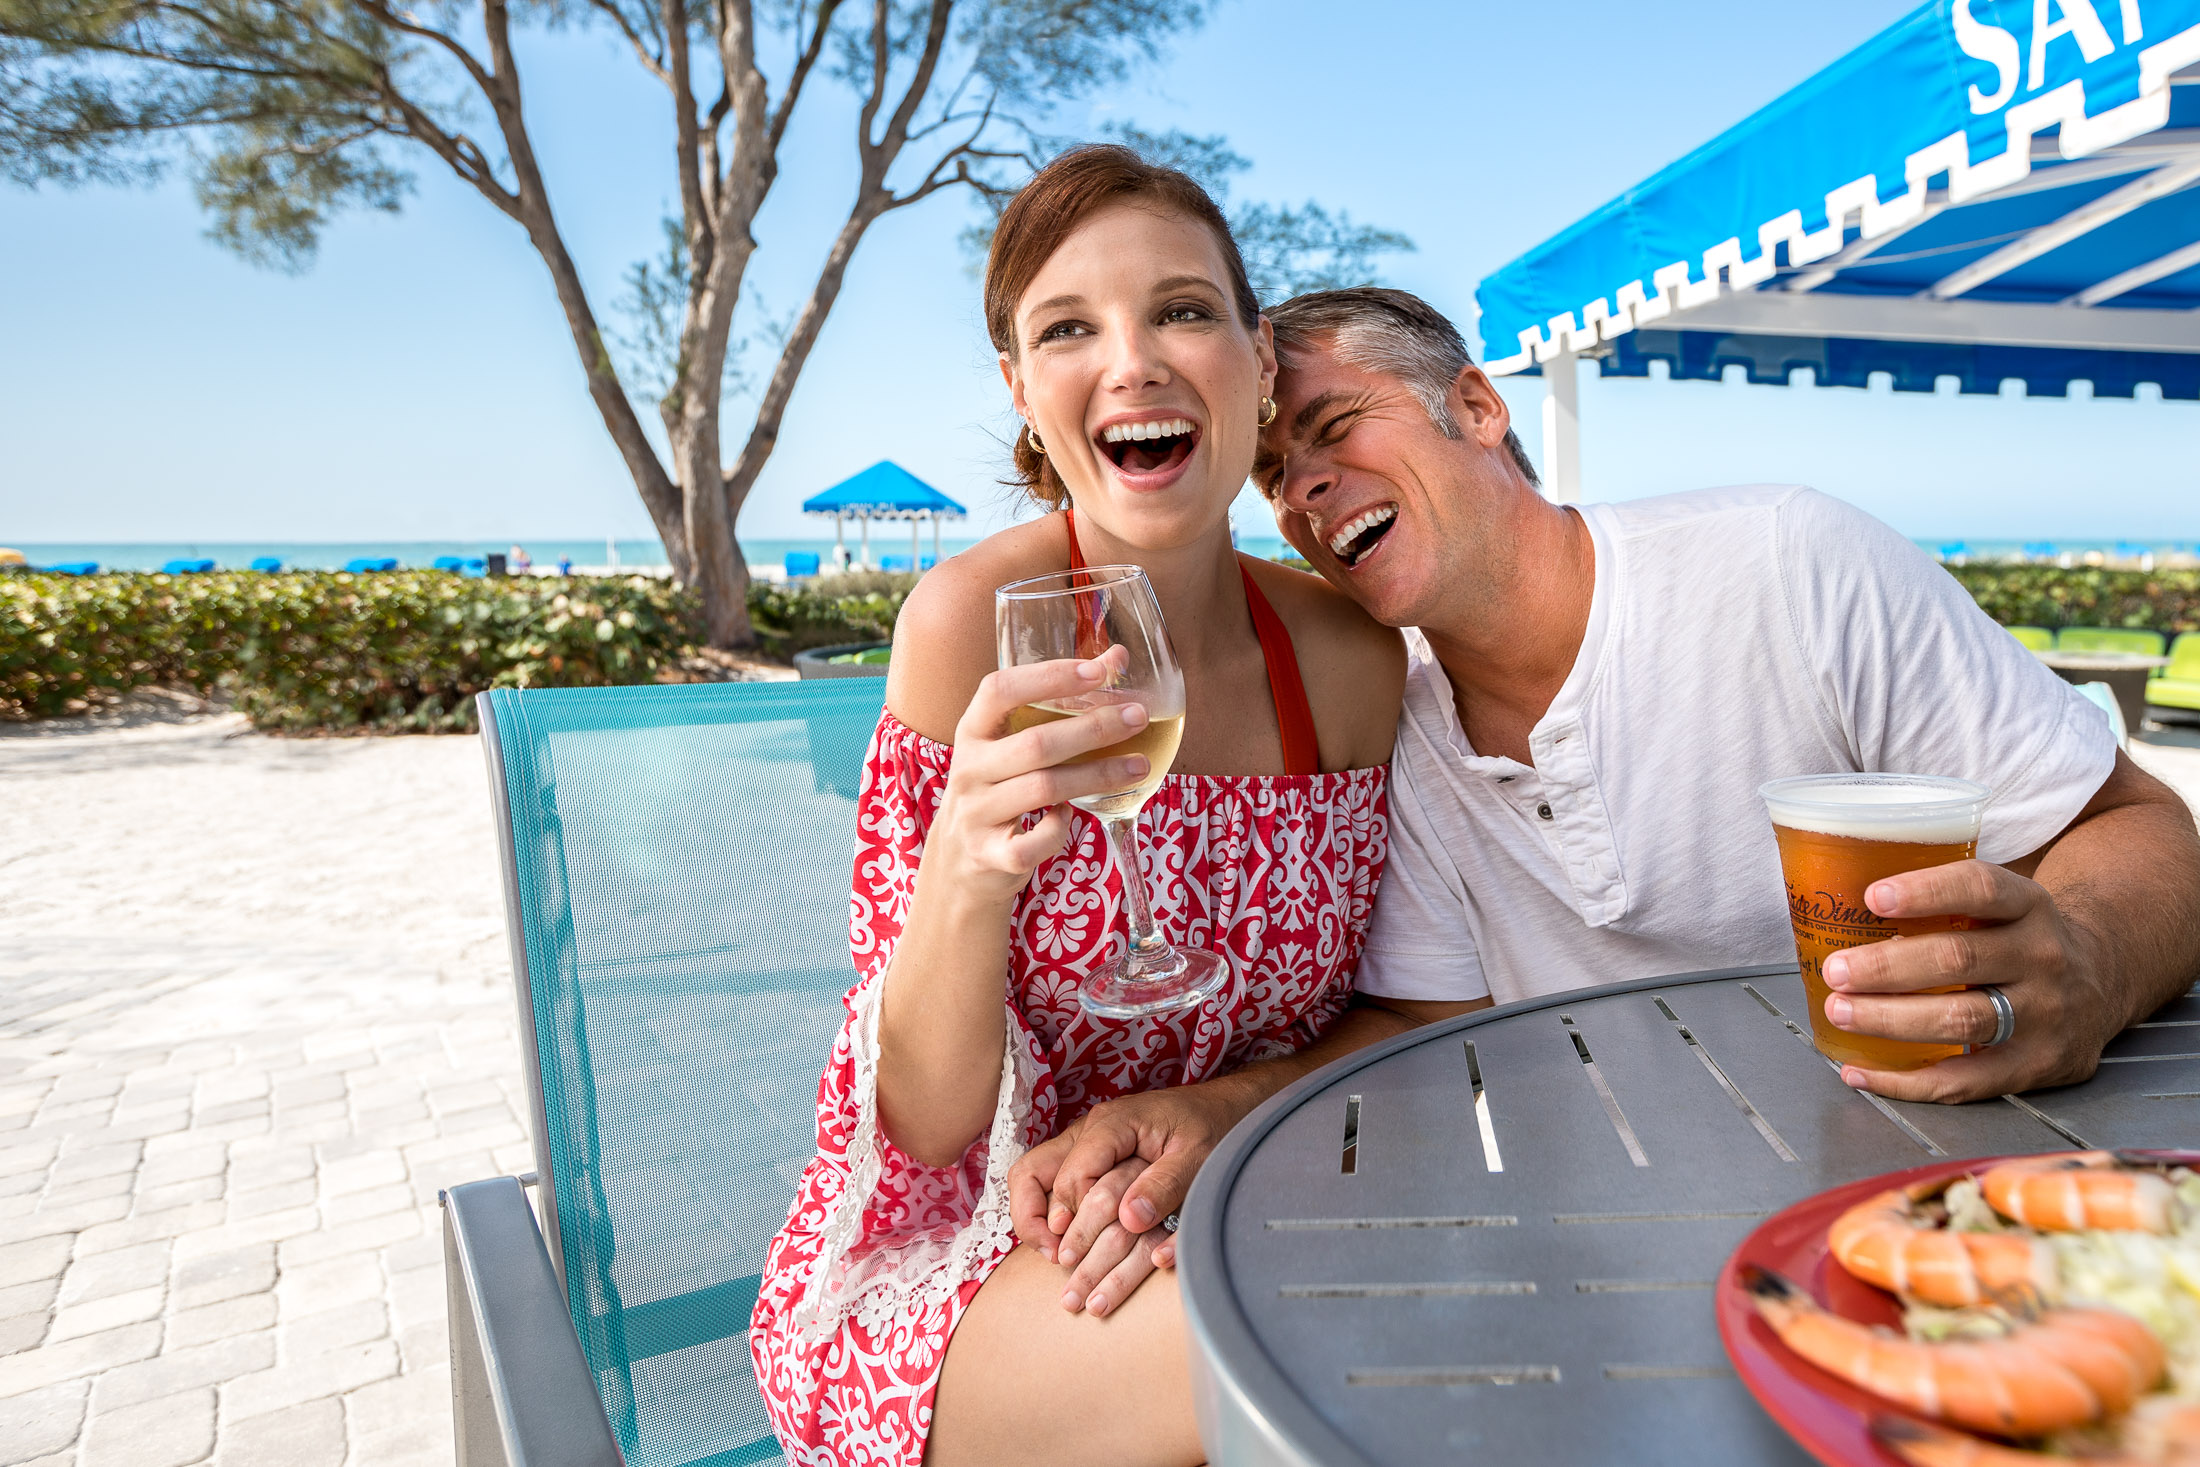 Middle aged couple laughing  at beach bar.  Photographed by Steve Widoff,